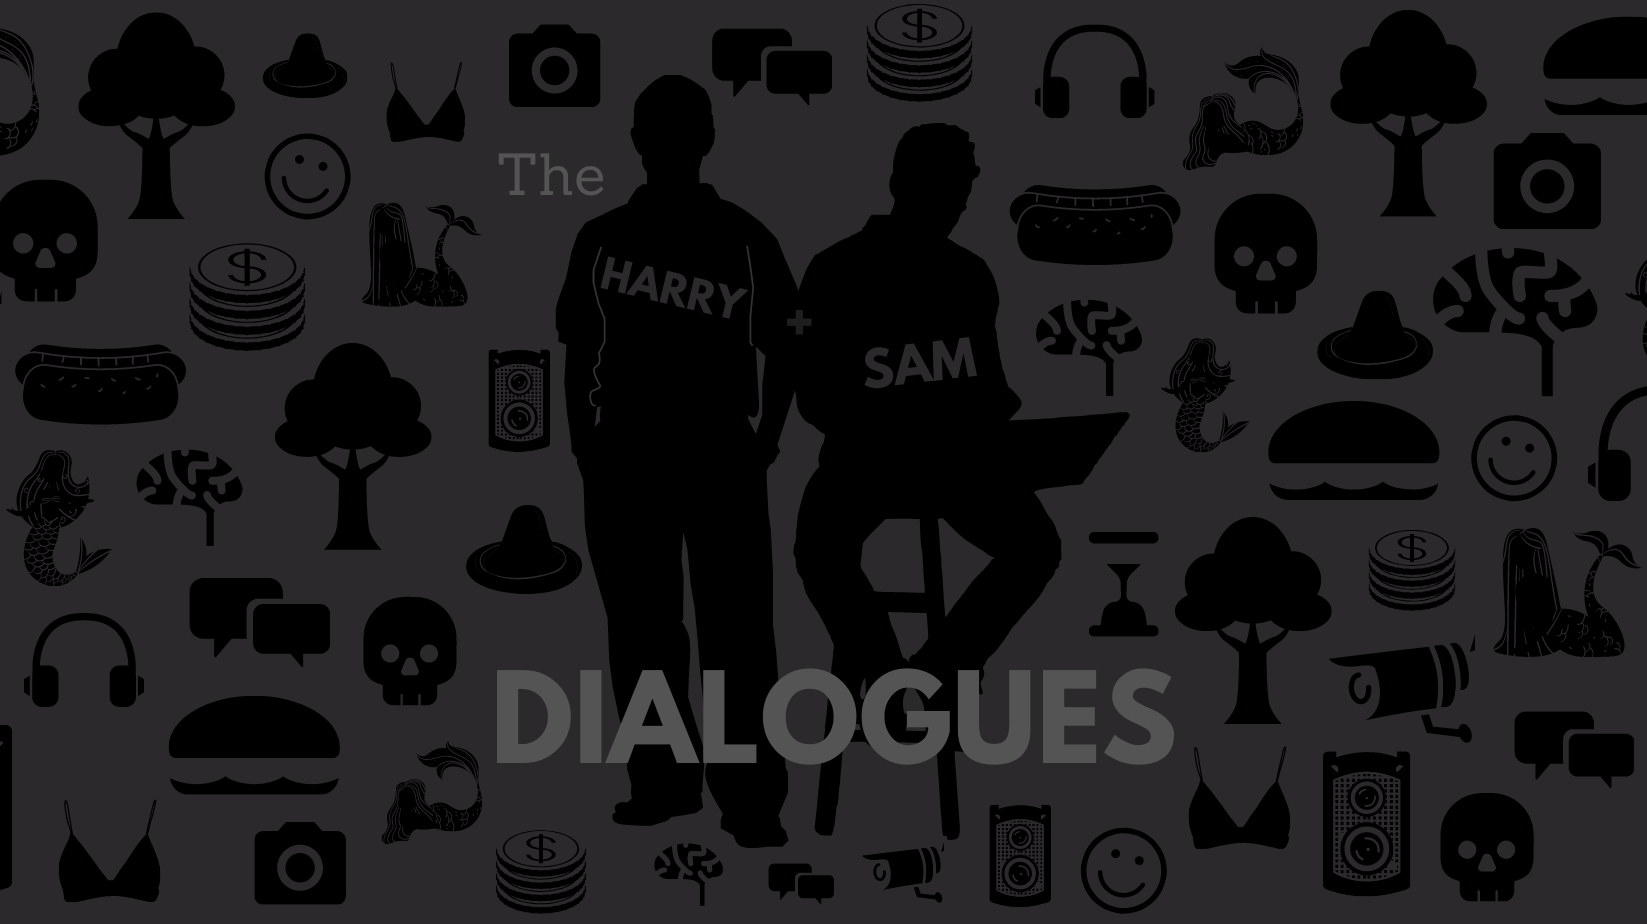 The Harry and Sam Dialogues - Online